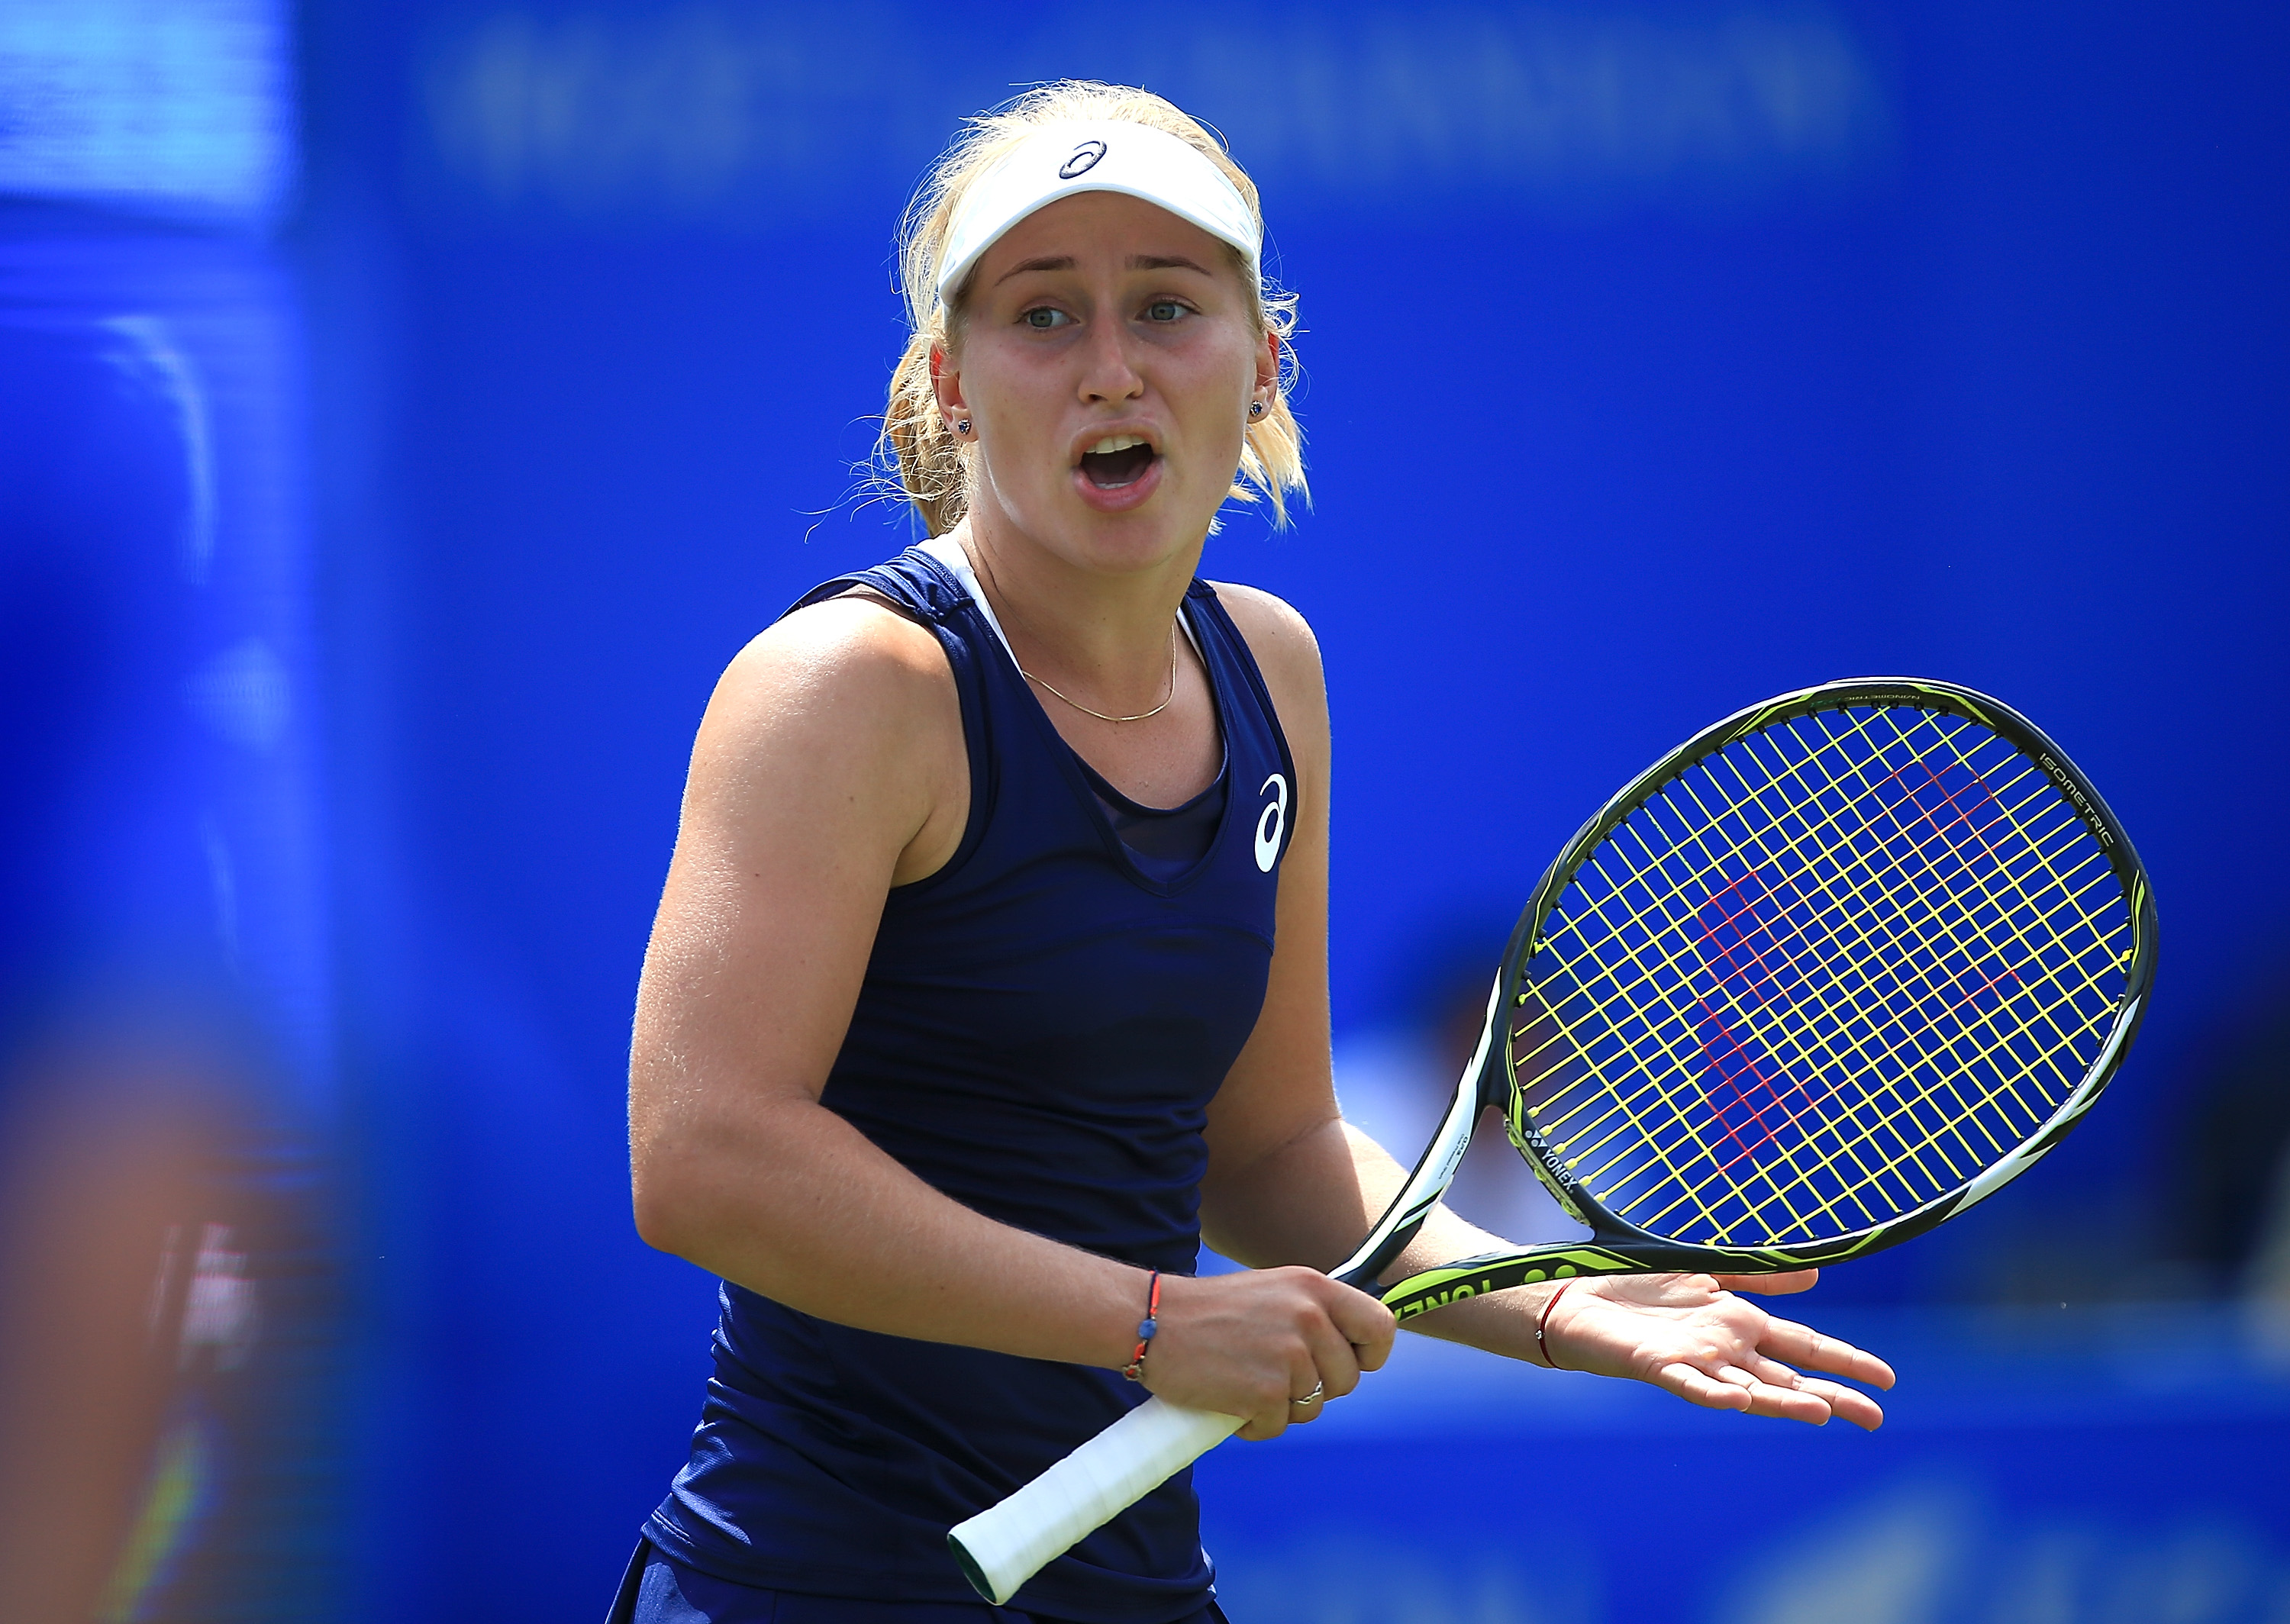 Comeback queen Kvitova wins Birmingham Open title